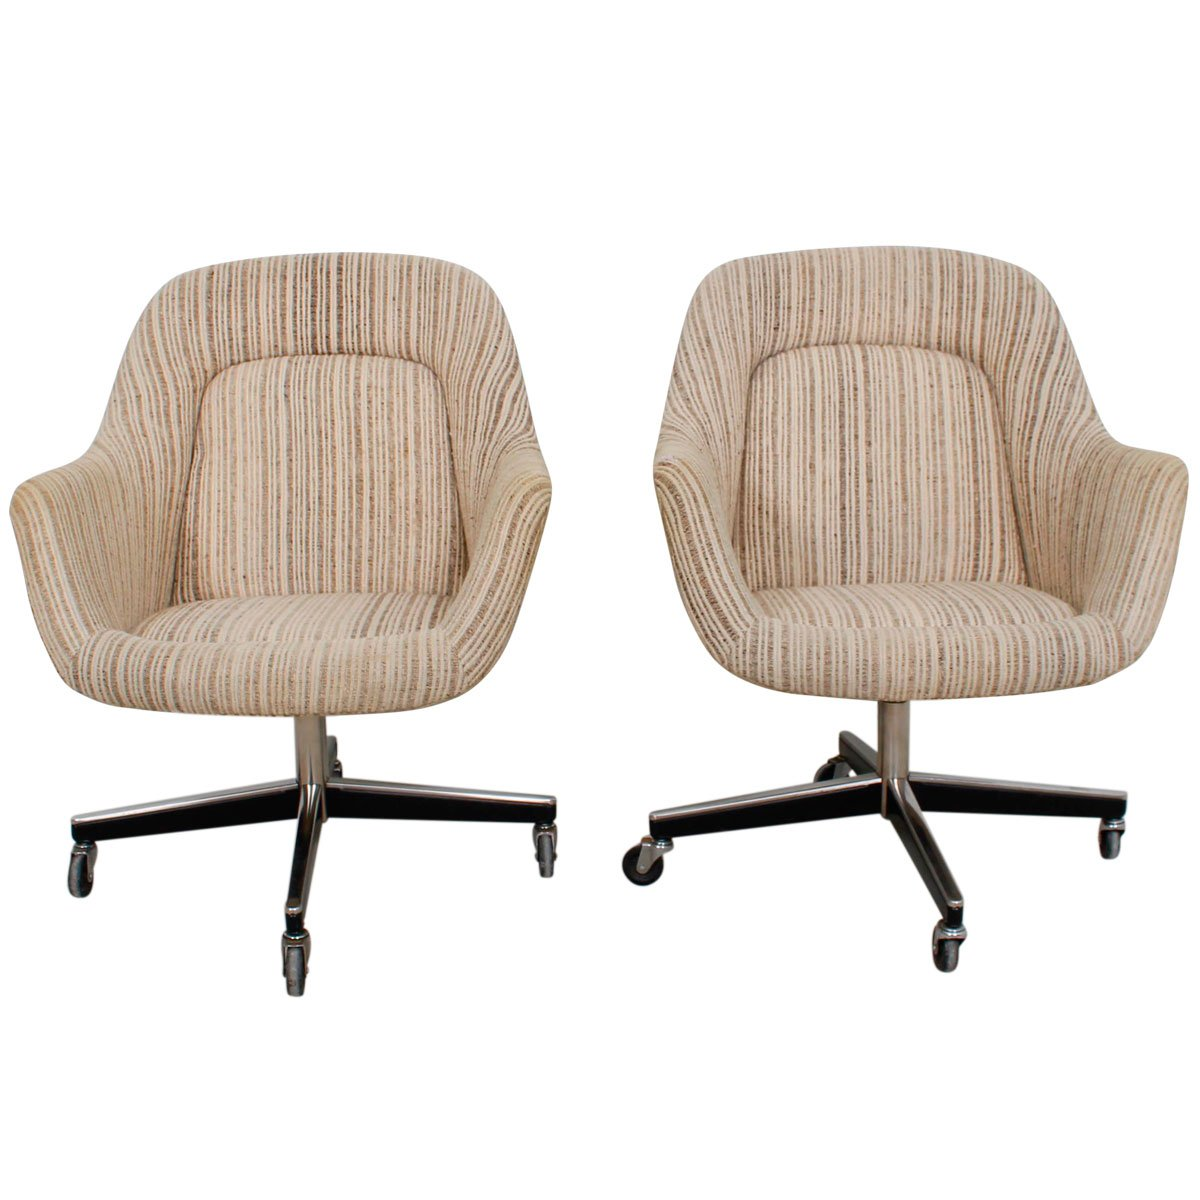 Knoll U2013 Pair Of U002770s Upholstered Chairs